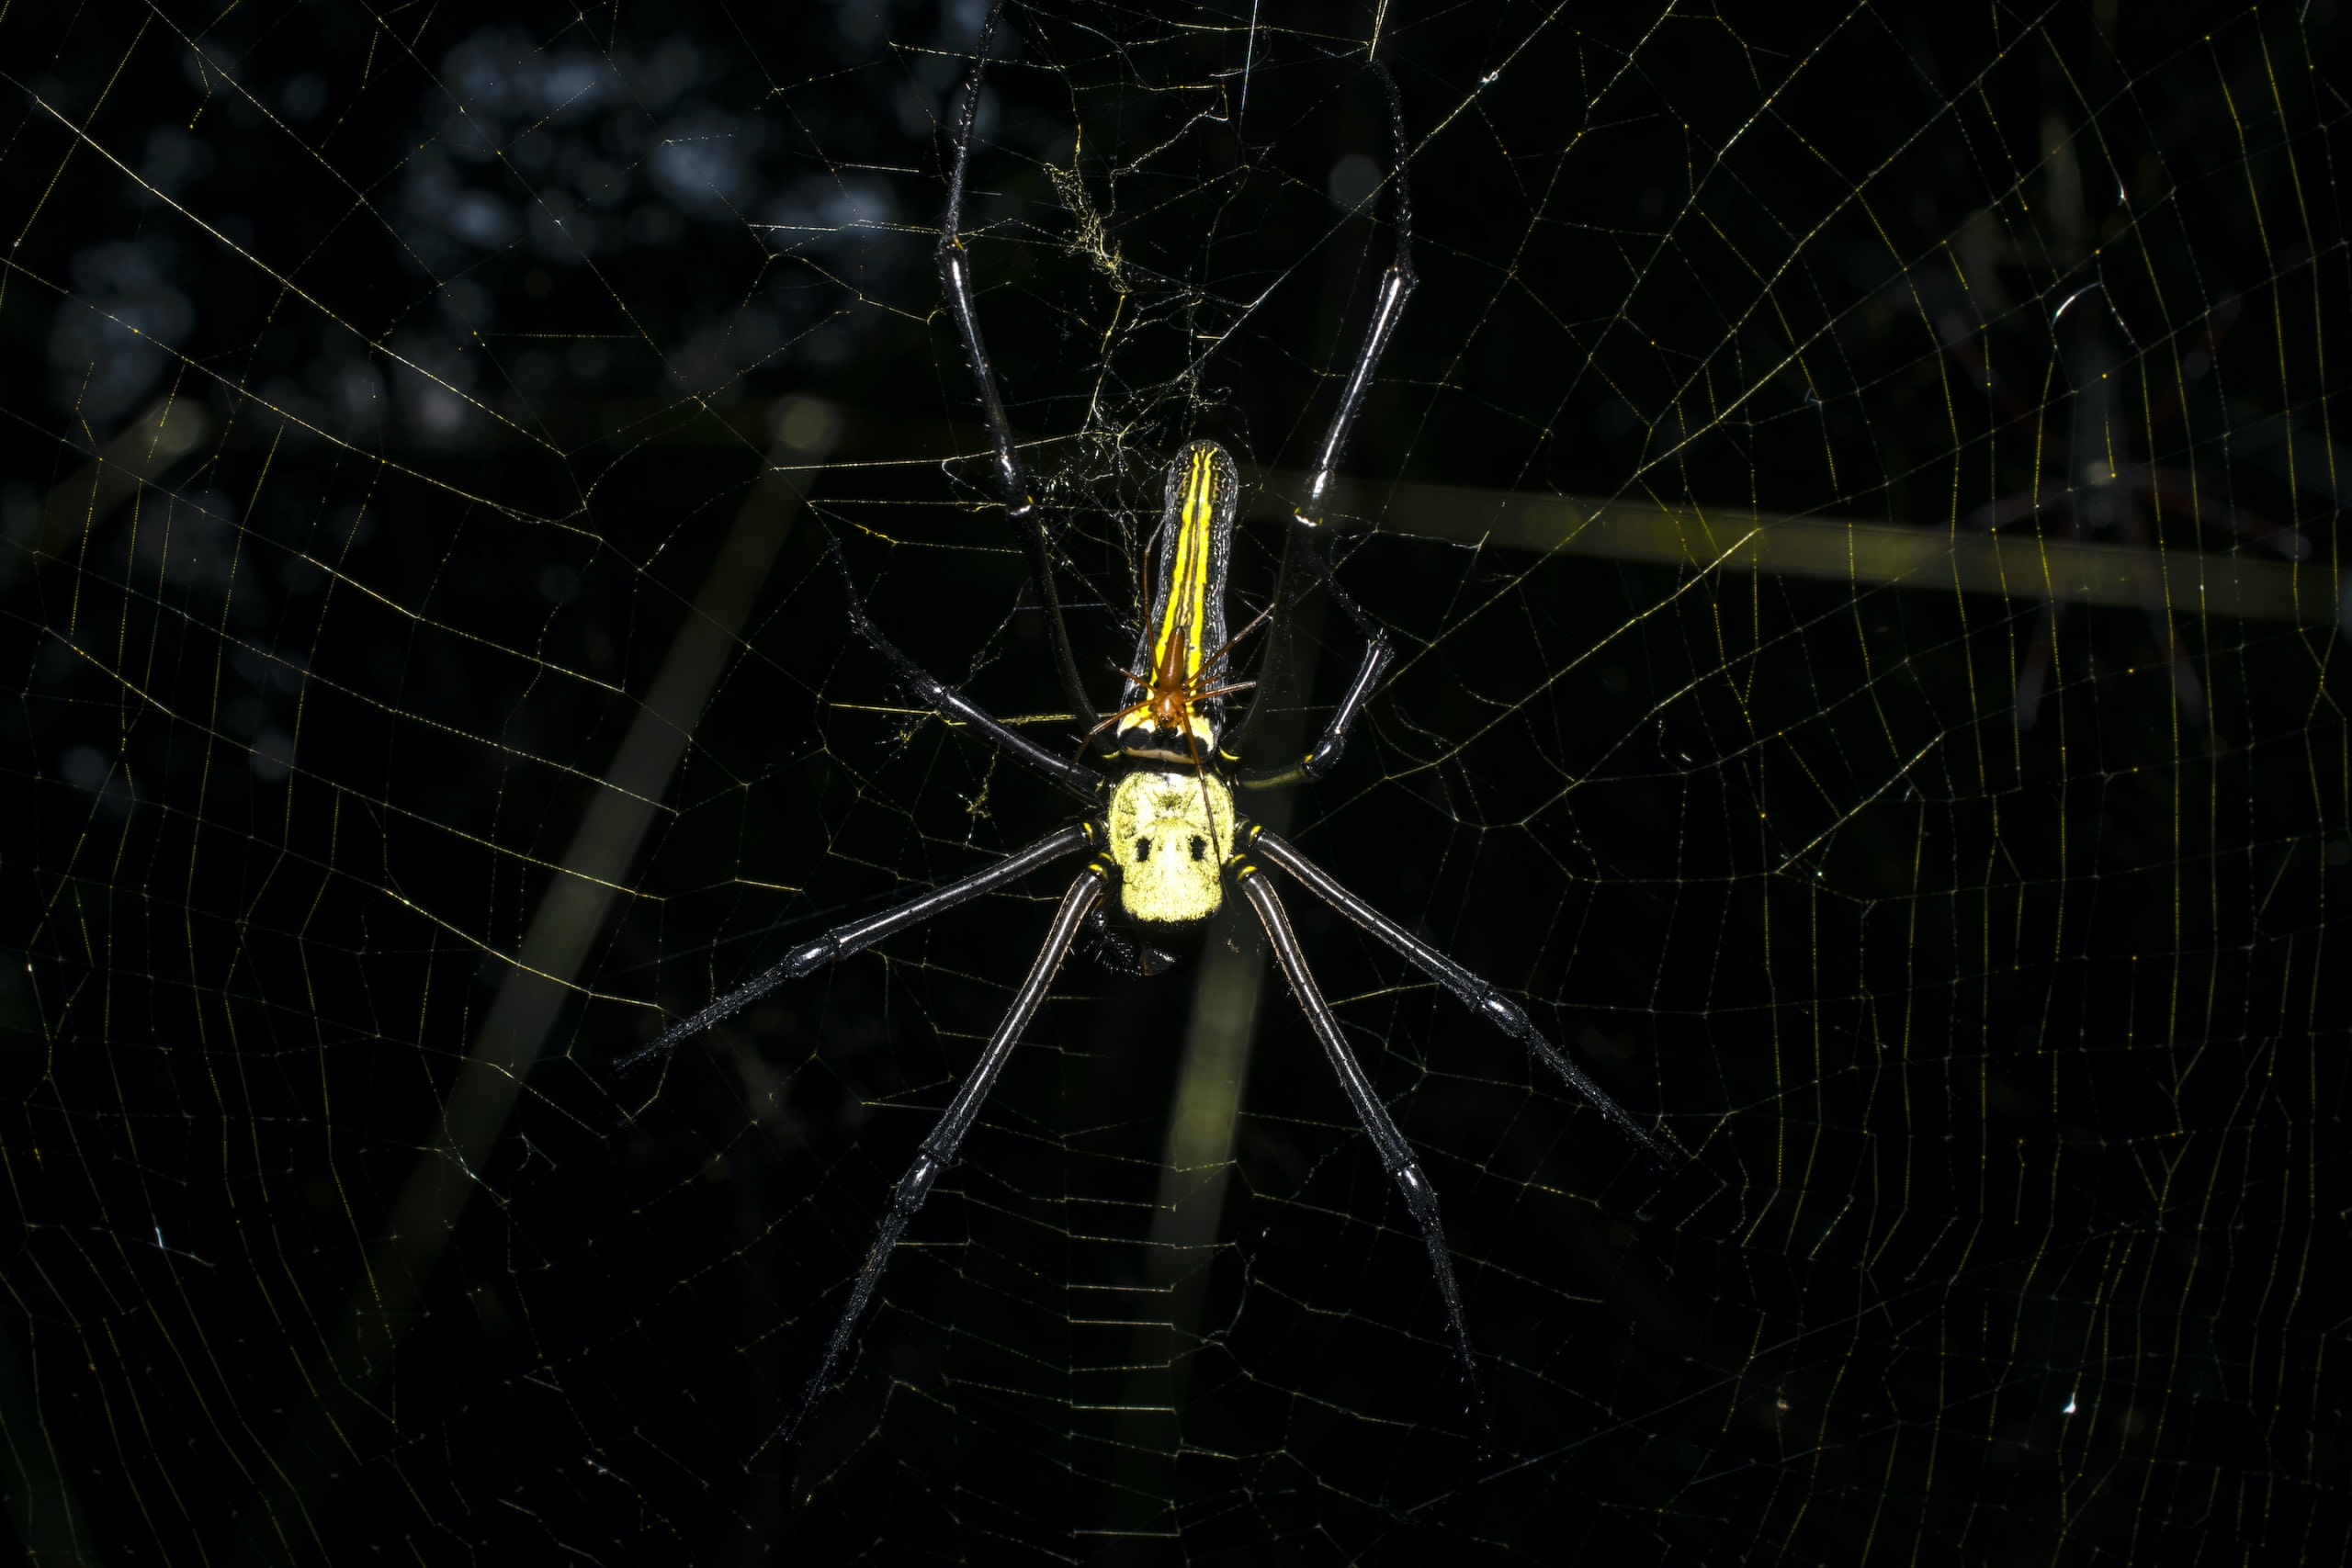 The fine sticky filaments of the web are interspersed with tiny droplets of glue and toxins. Photo: Samuel John  Cover: The web of the golden orb-weaver is durable enough to trap small birds. Cover photo: Samuel John